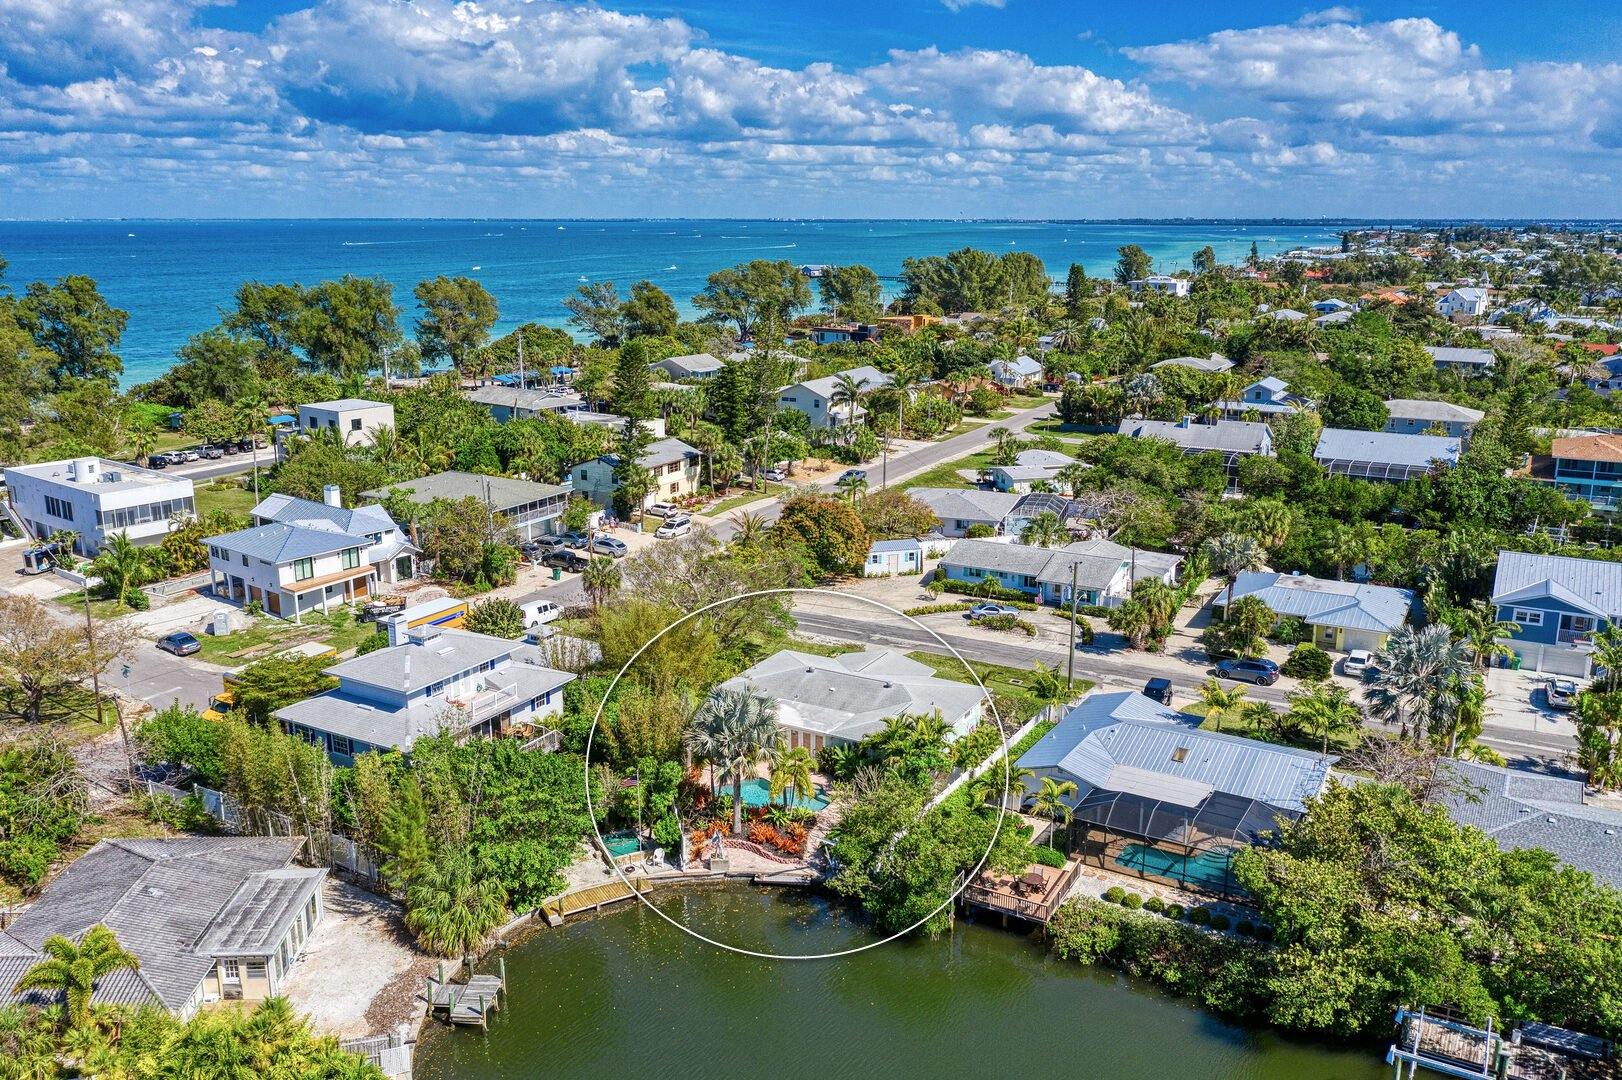 aerial view from the North of Mermaids & Manatees